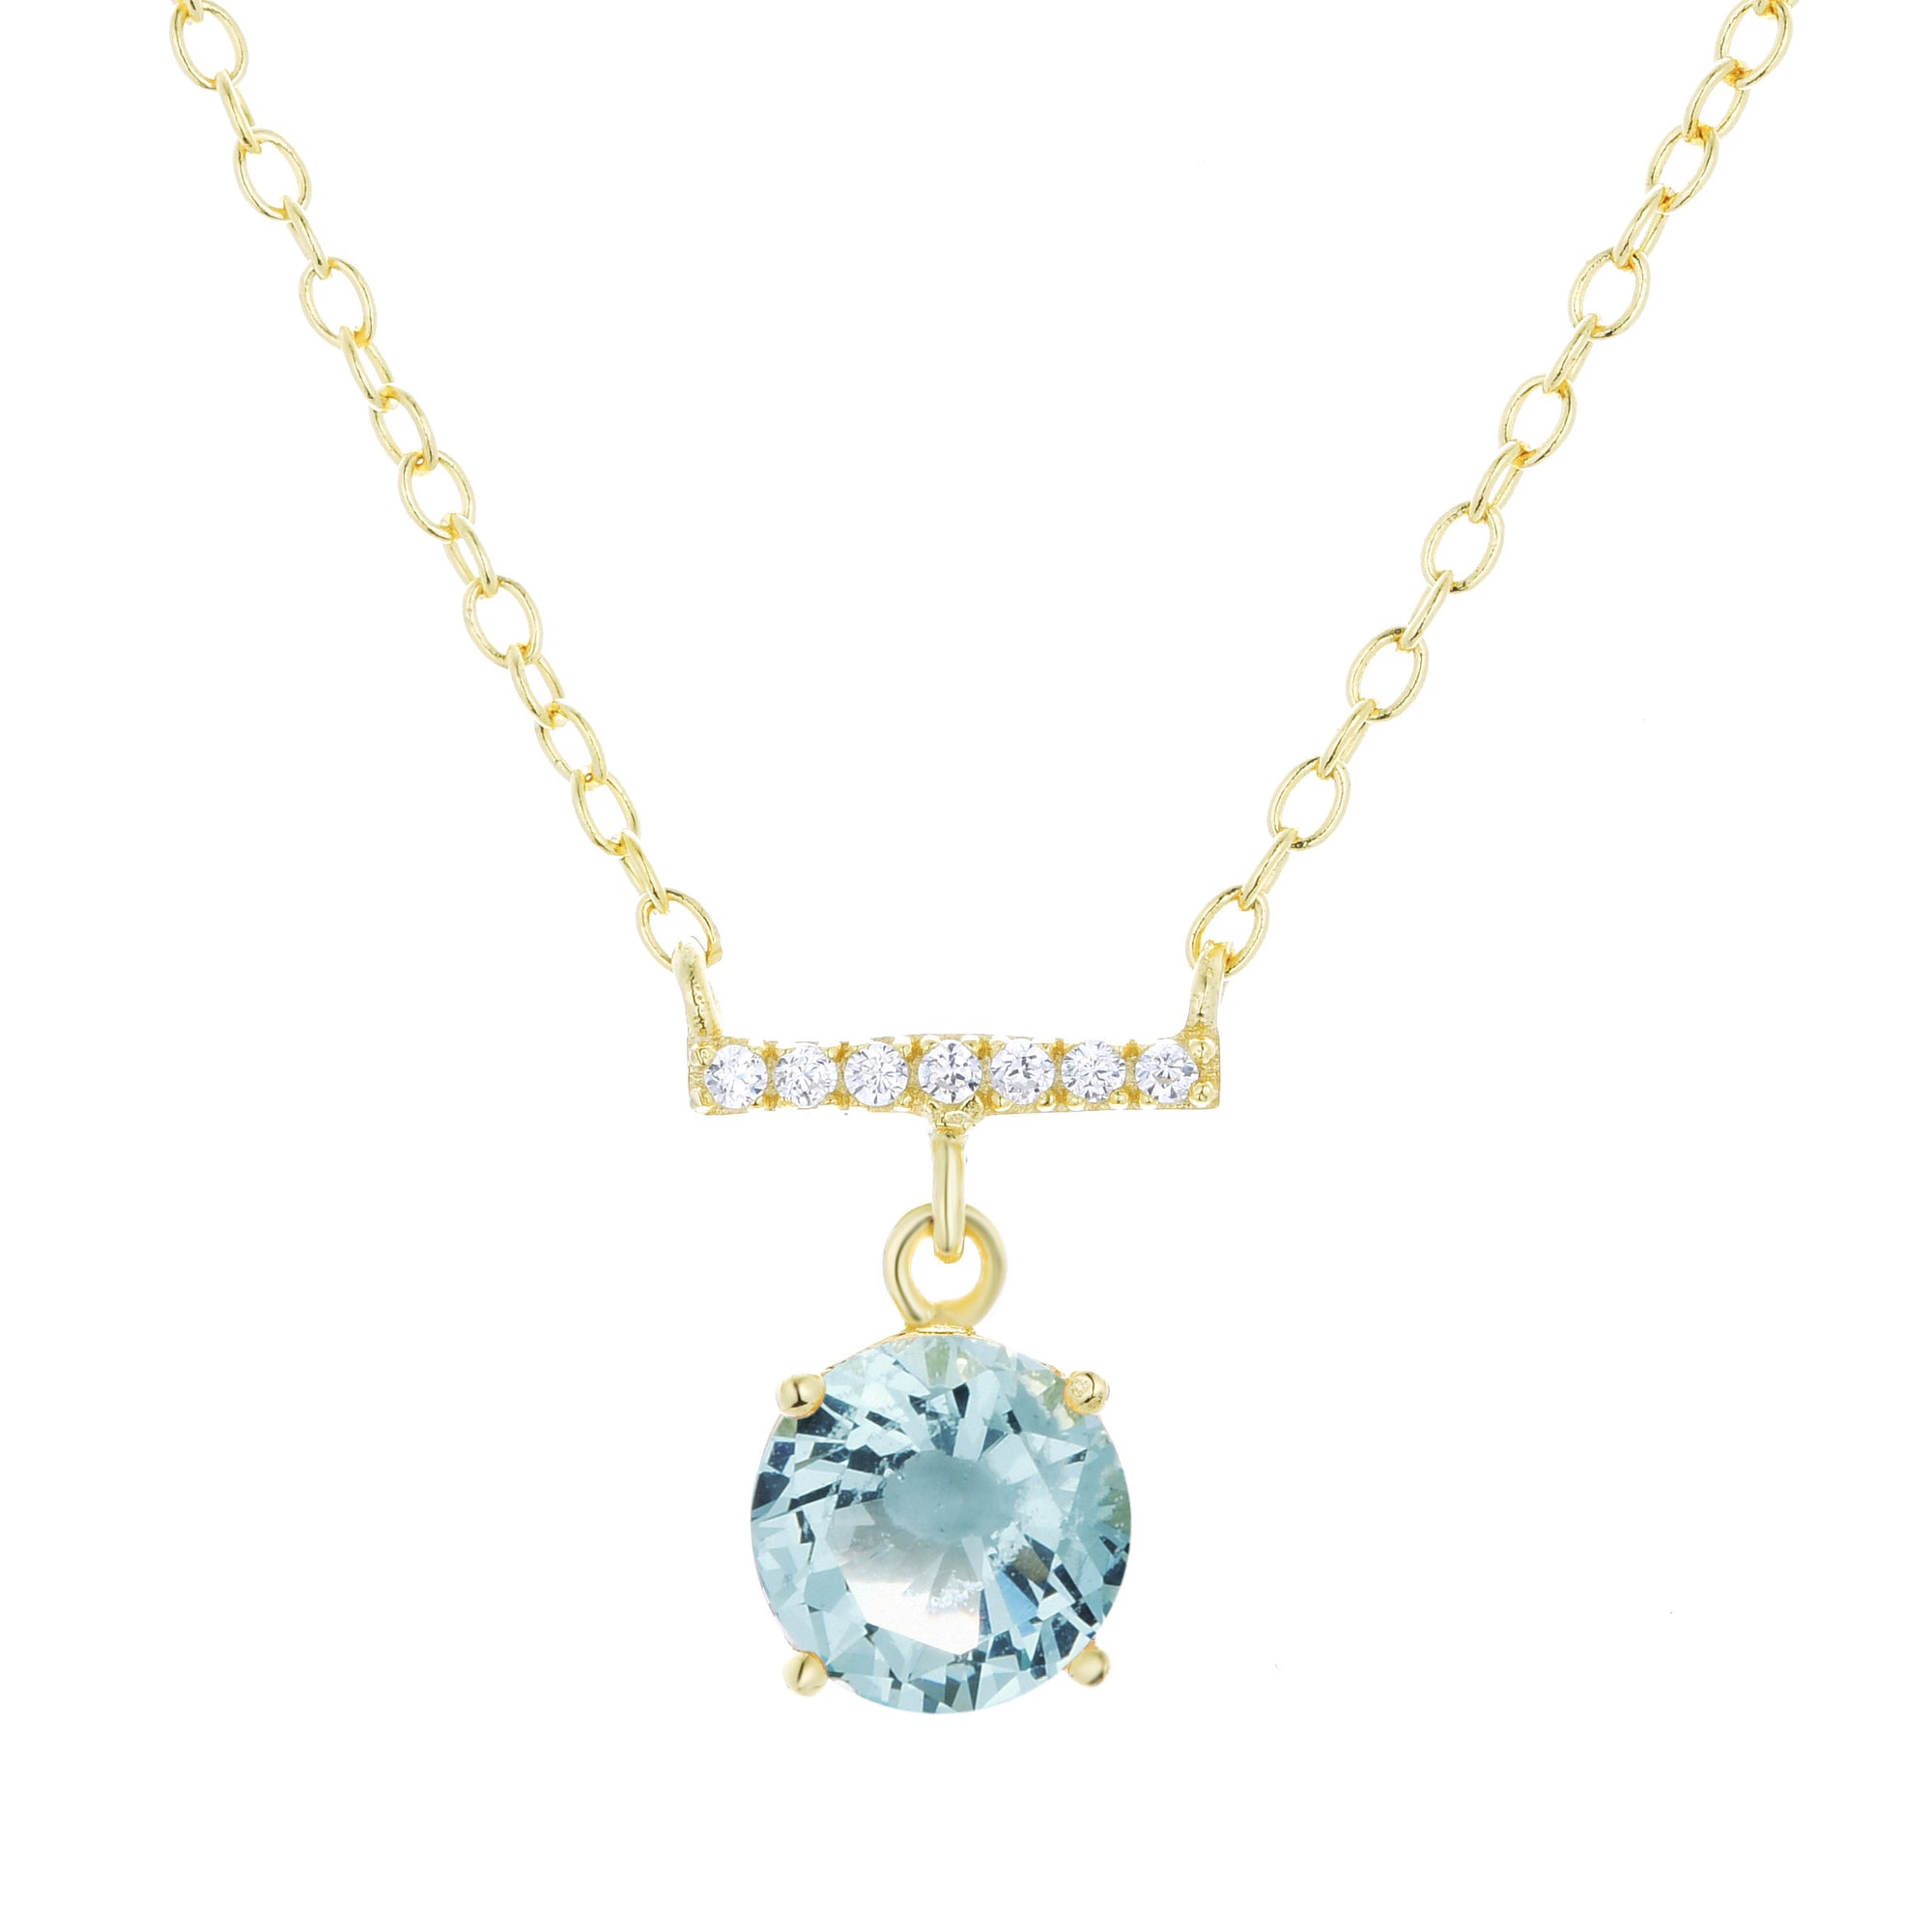 Solitaire Crystal Bar Necklace in aqua green